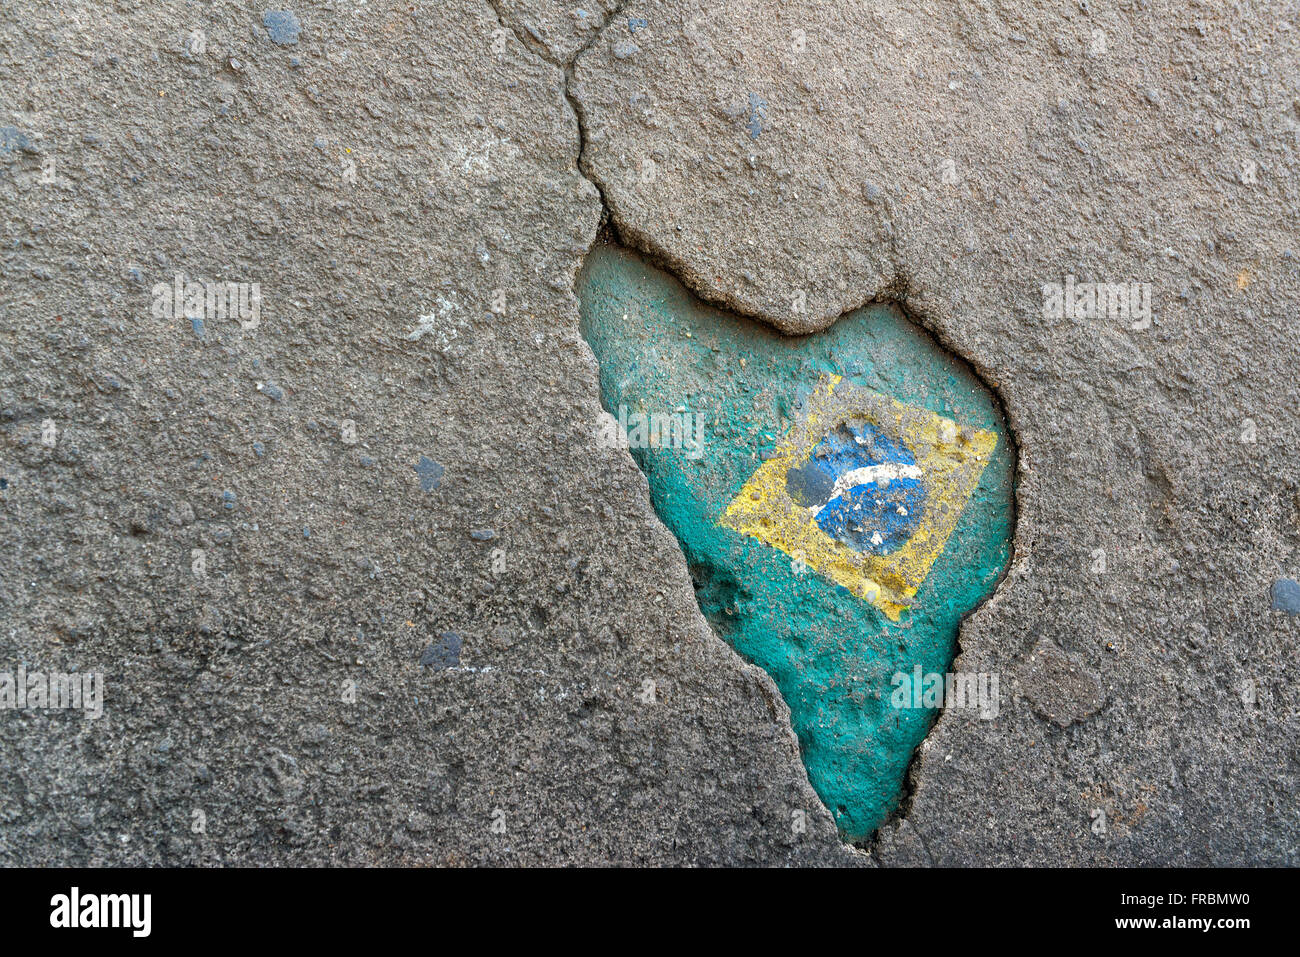 Hole in the sidewalk with design that resembles the map of Brazil - Stock Image